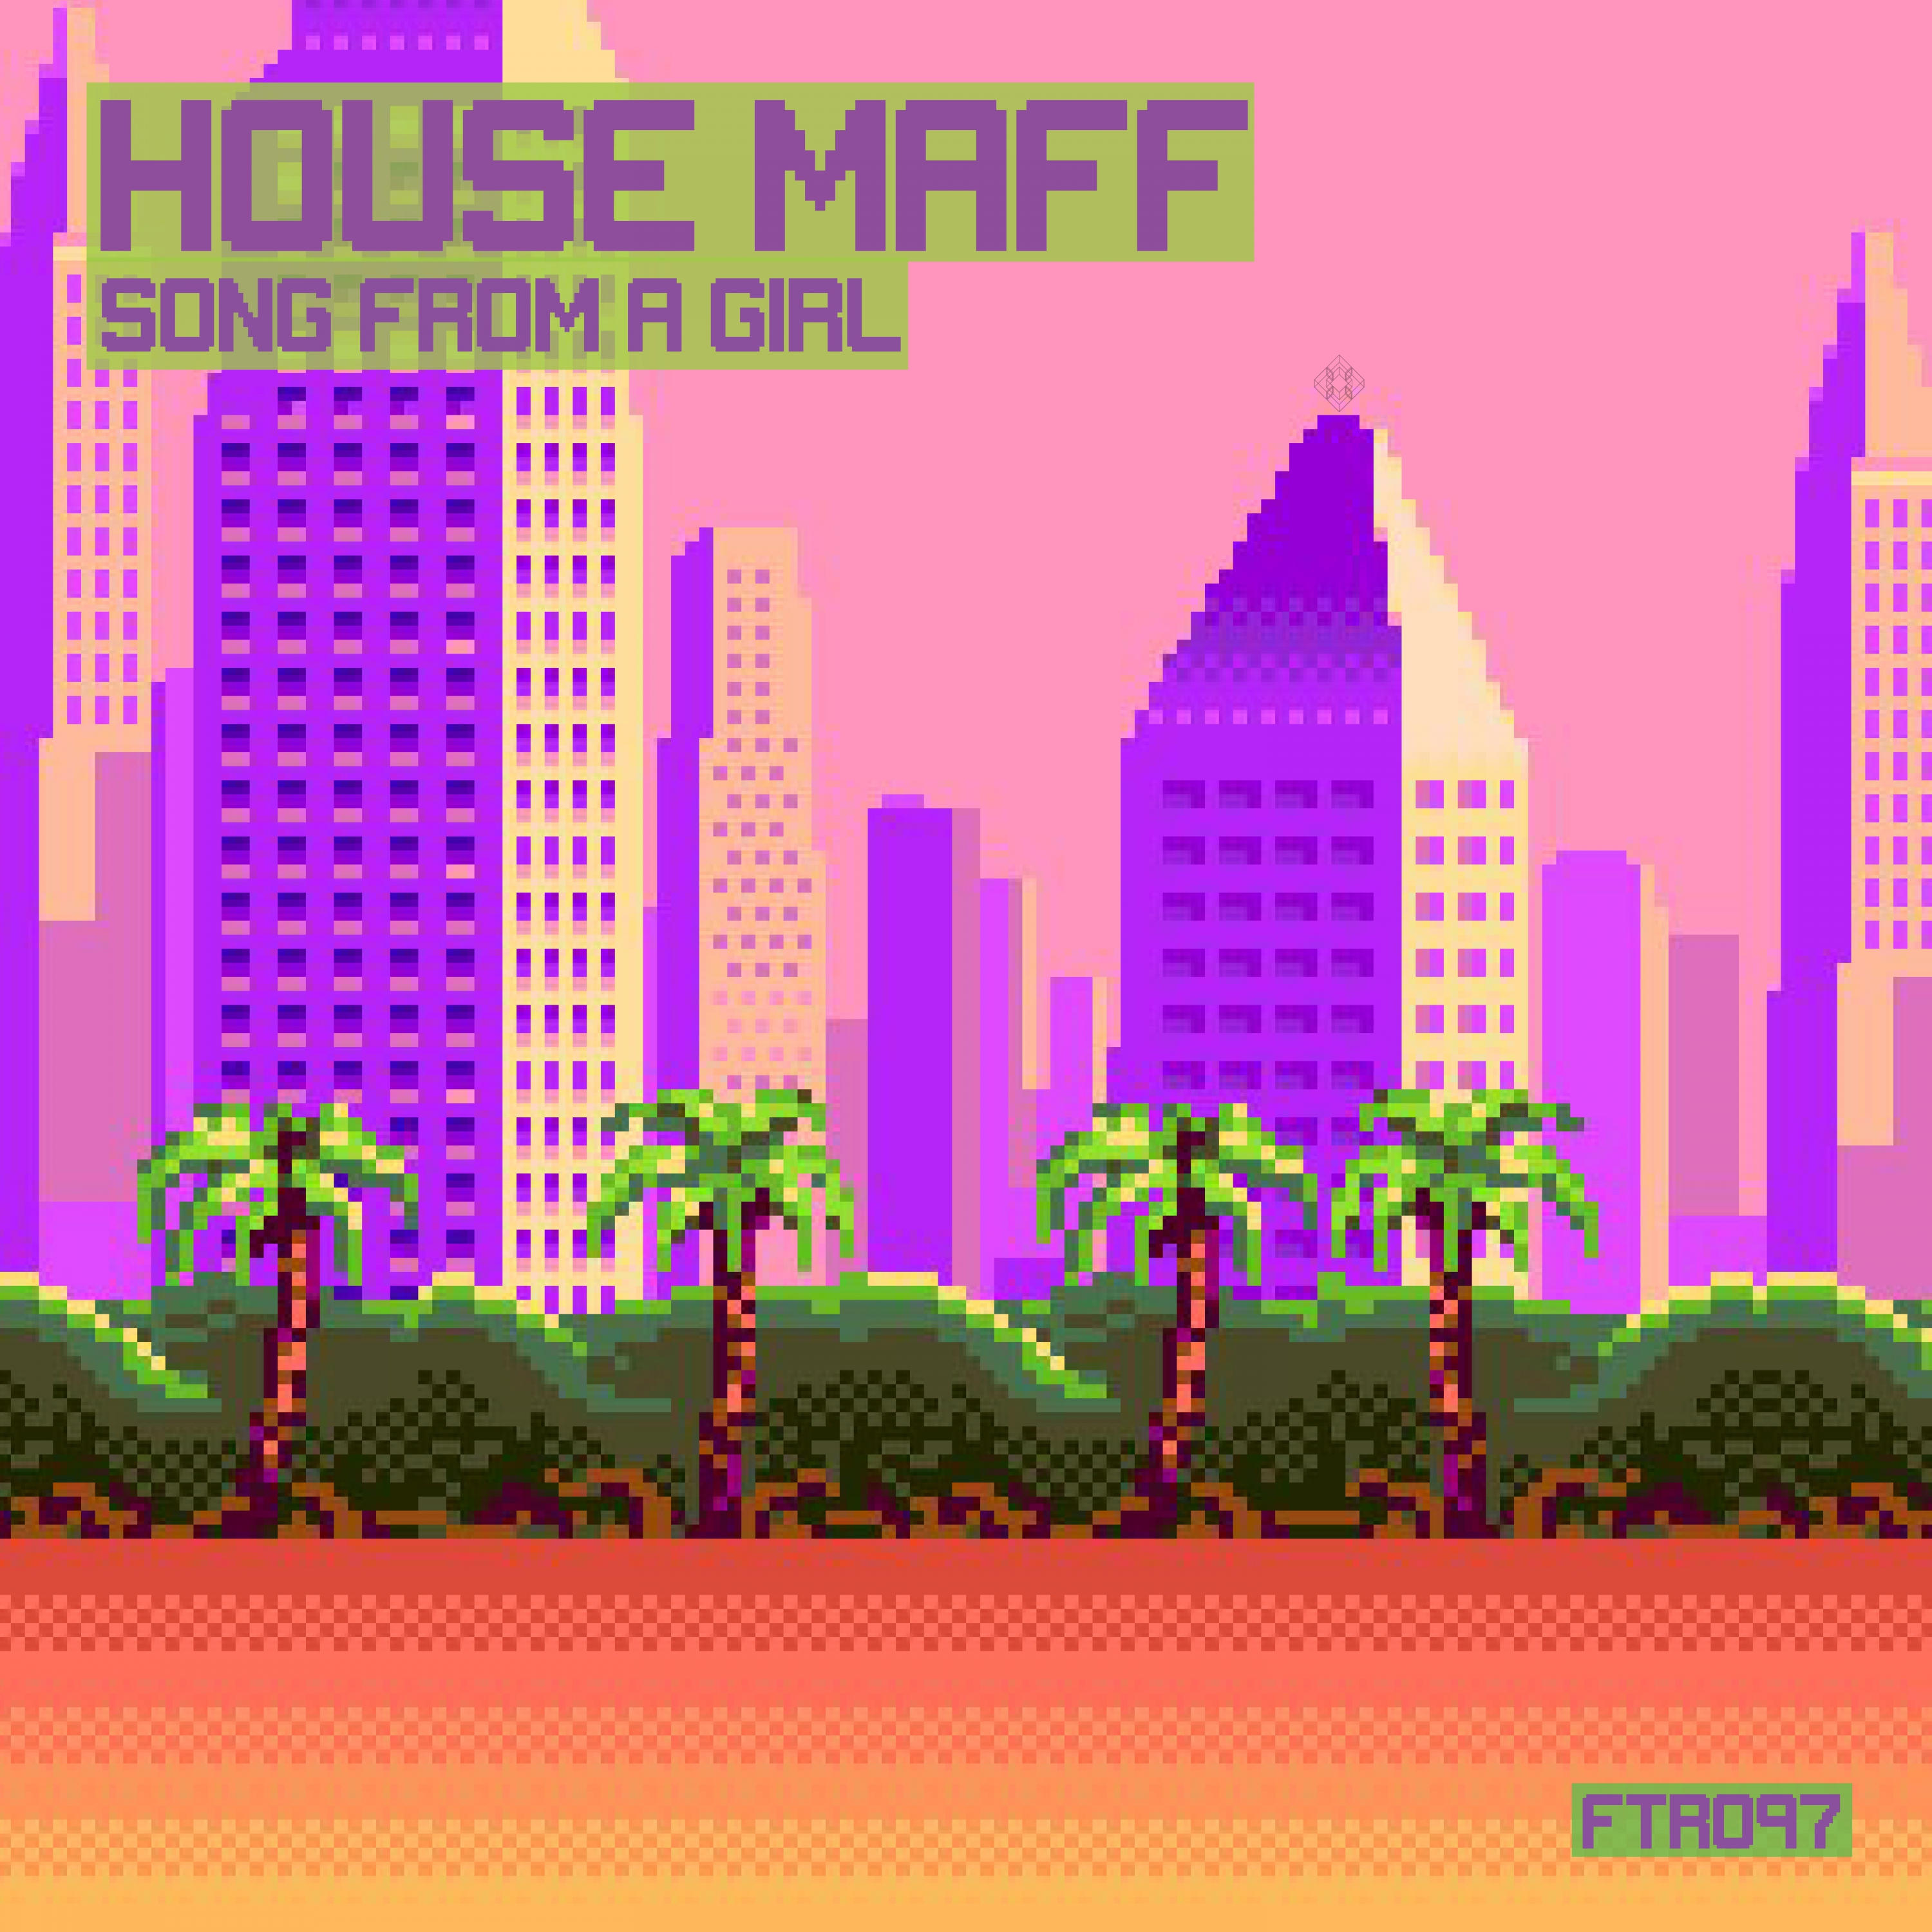 House Maff - Song From A Girl (Original mix)